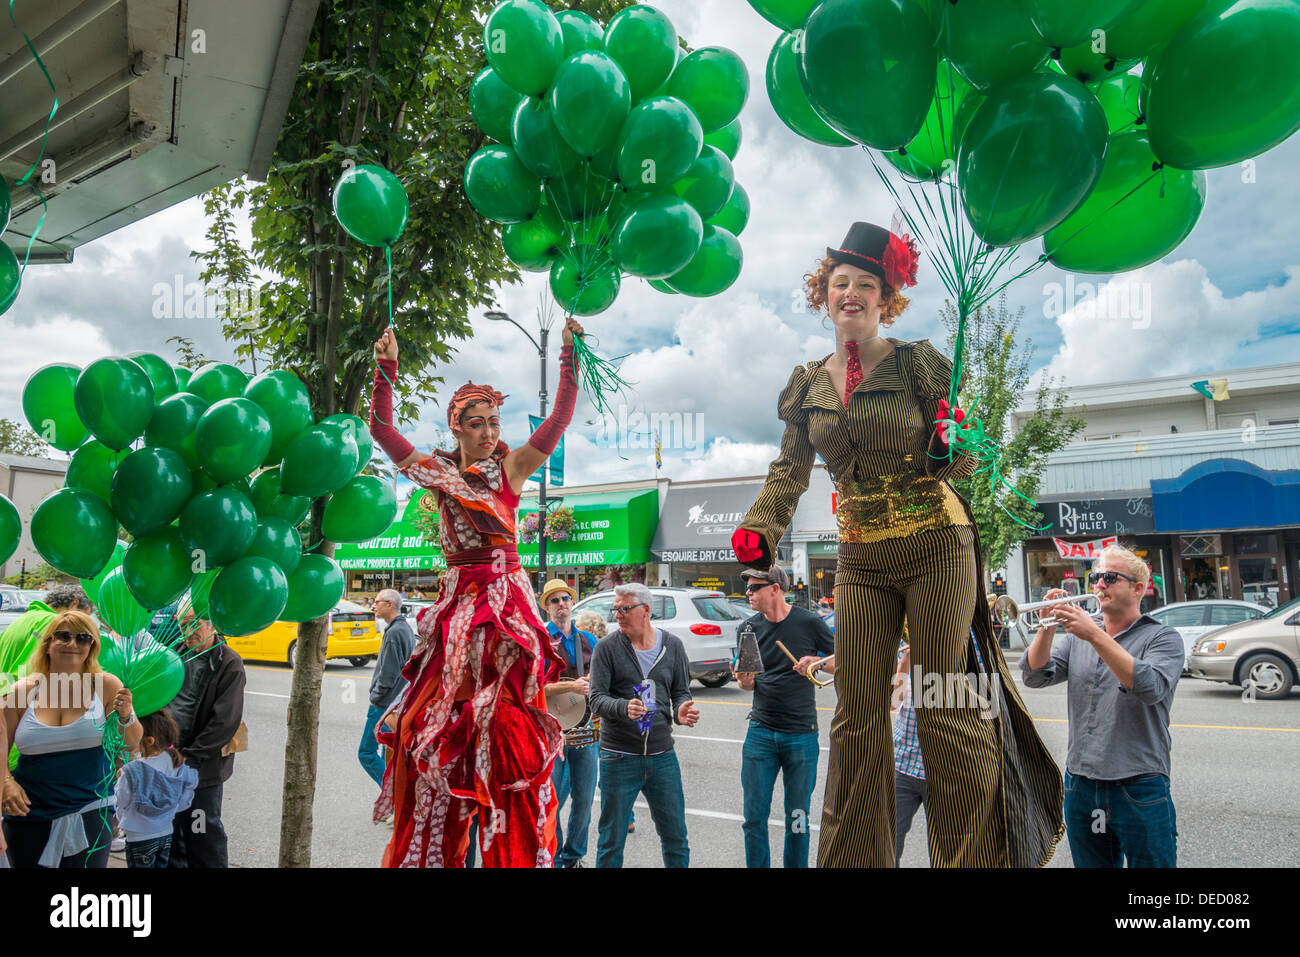 Stilt performers and the Paperboys band at Cambie Village Summer Sizzler event, Vancouver, British Columbia, Canada - Stock Image